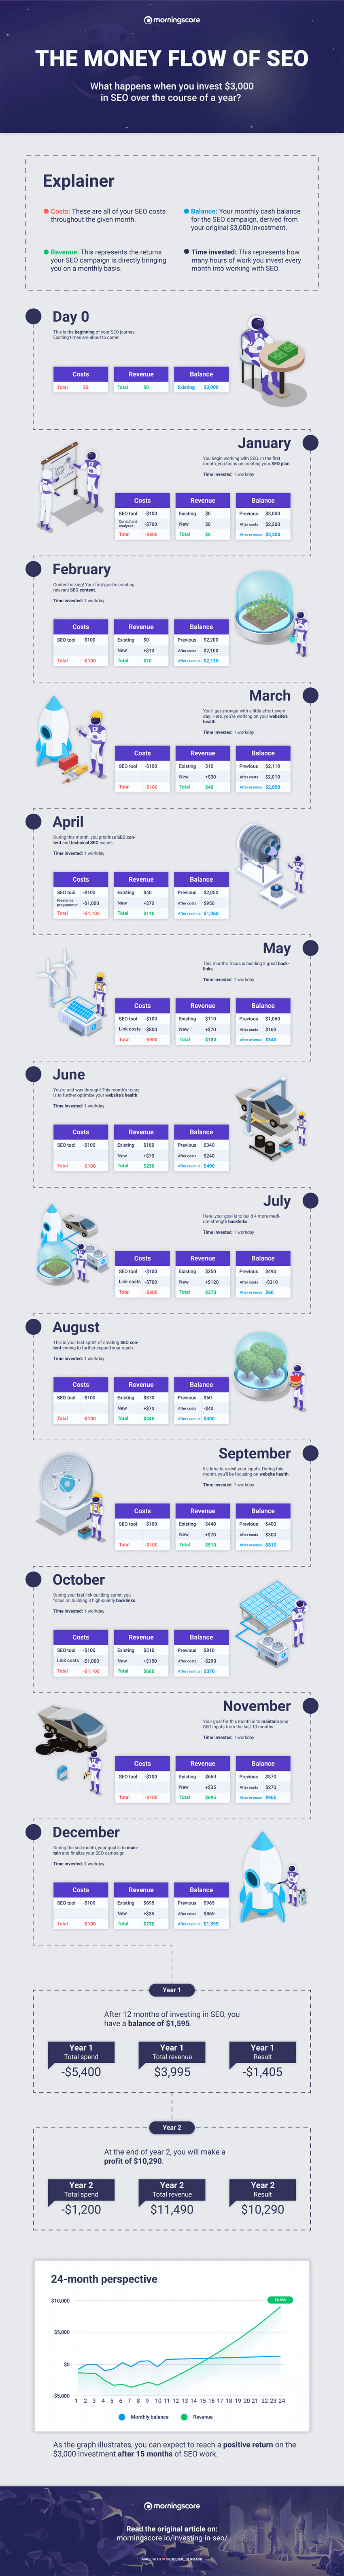 What happens when you invest in SEO over 12 months? infographic